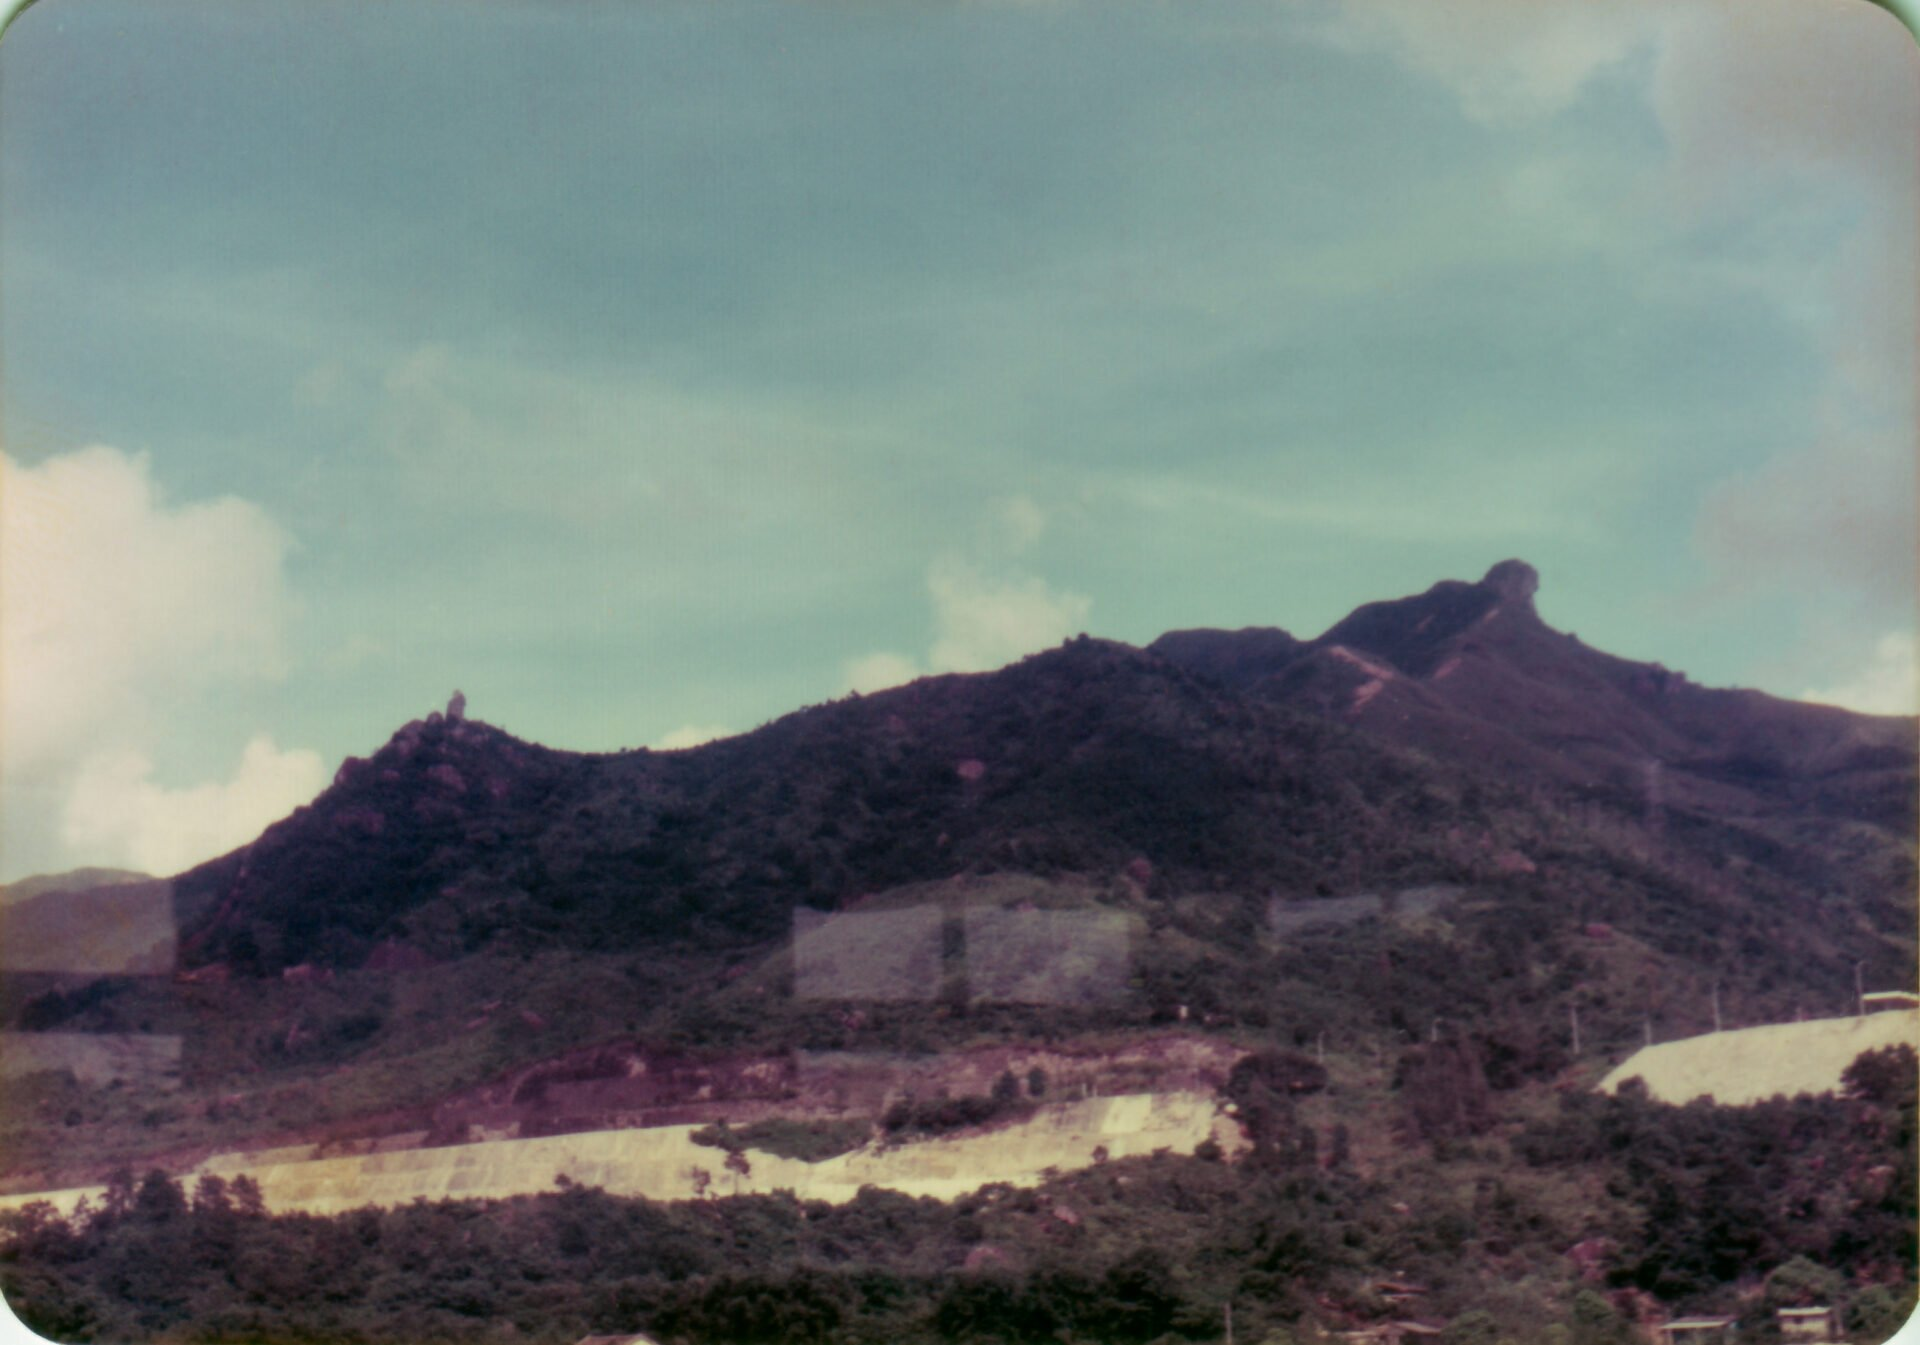 Hong Kong Lion rock right Amah rock left from train in new territories